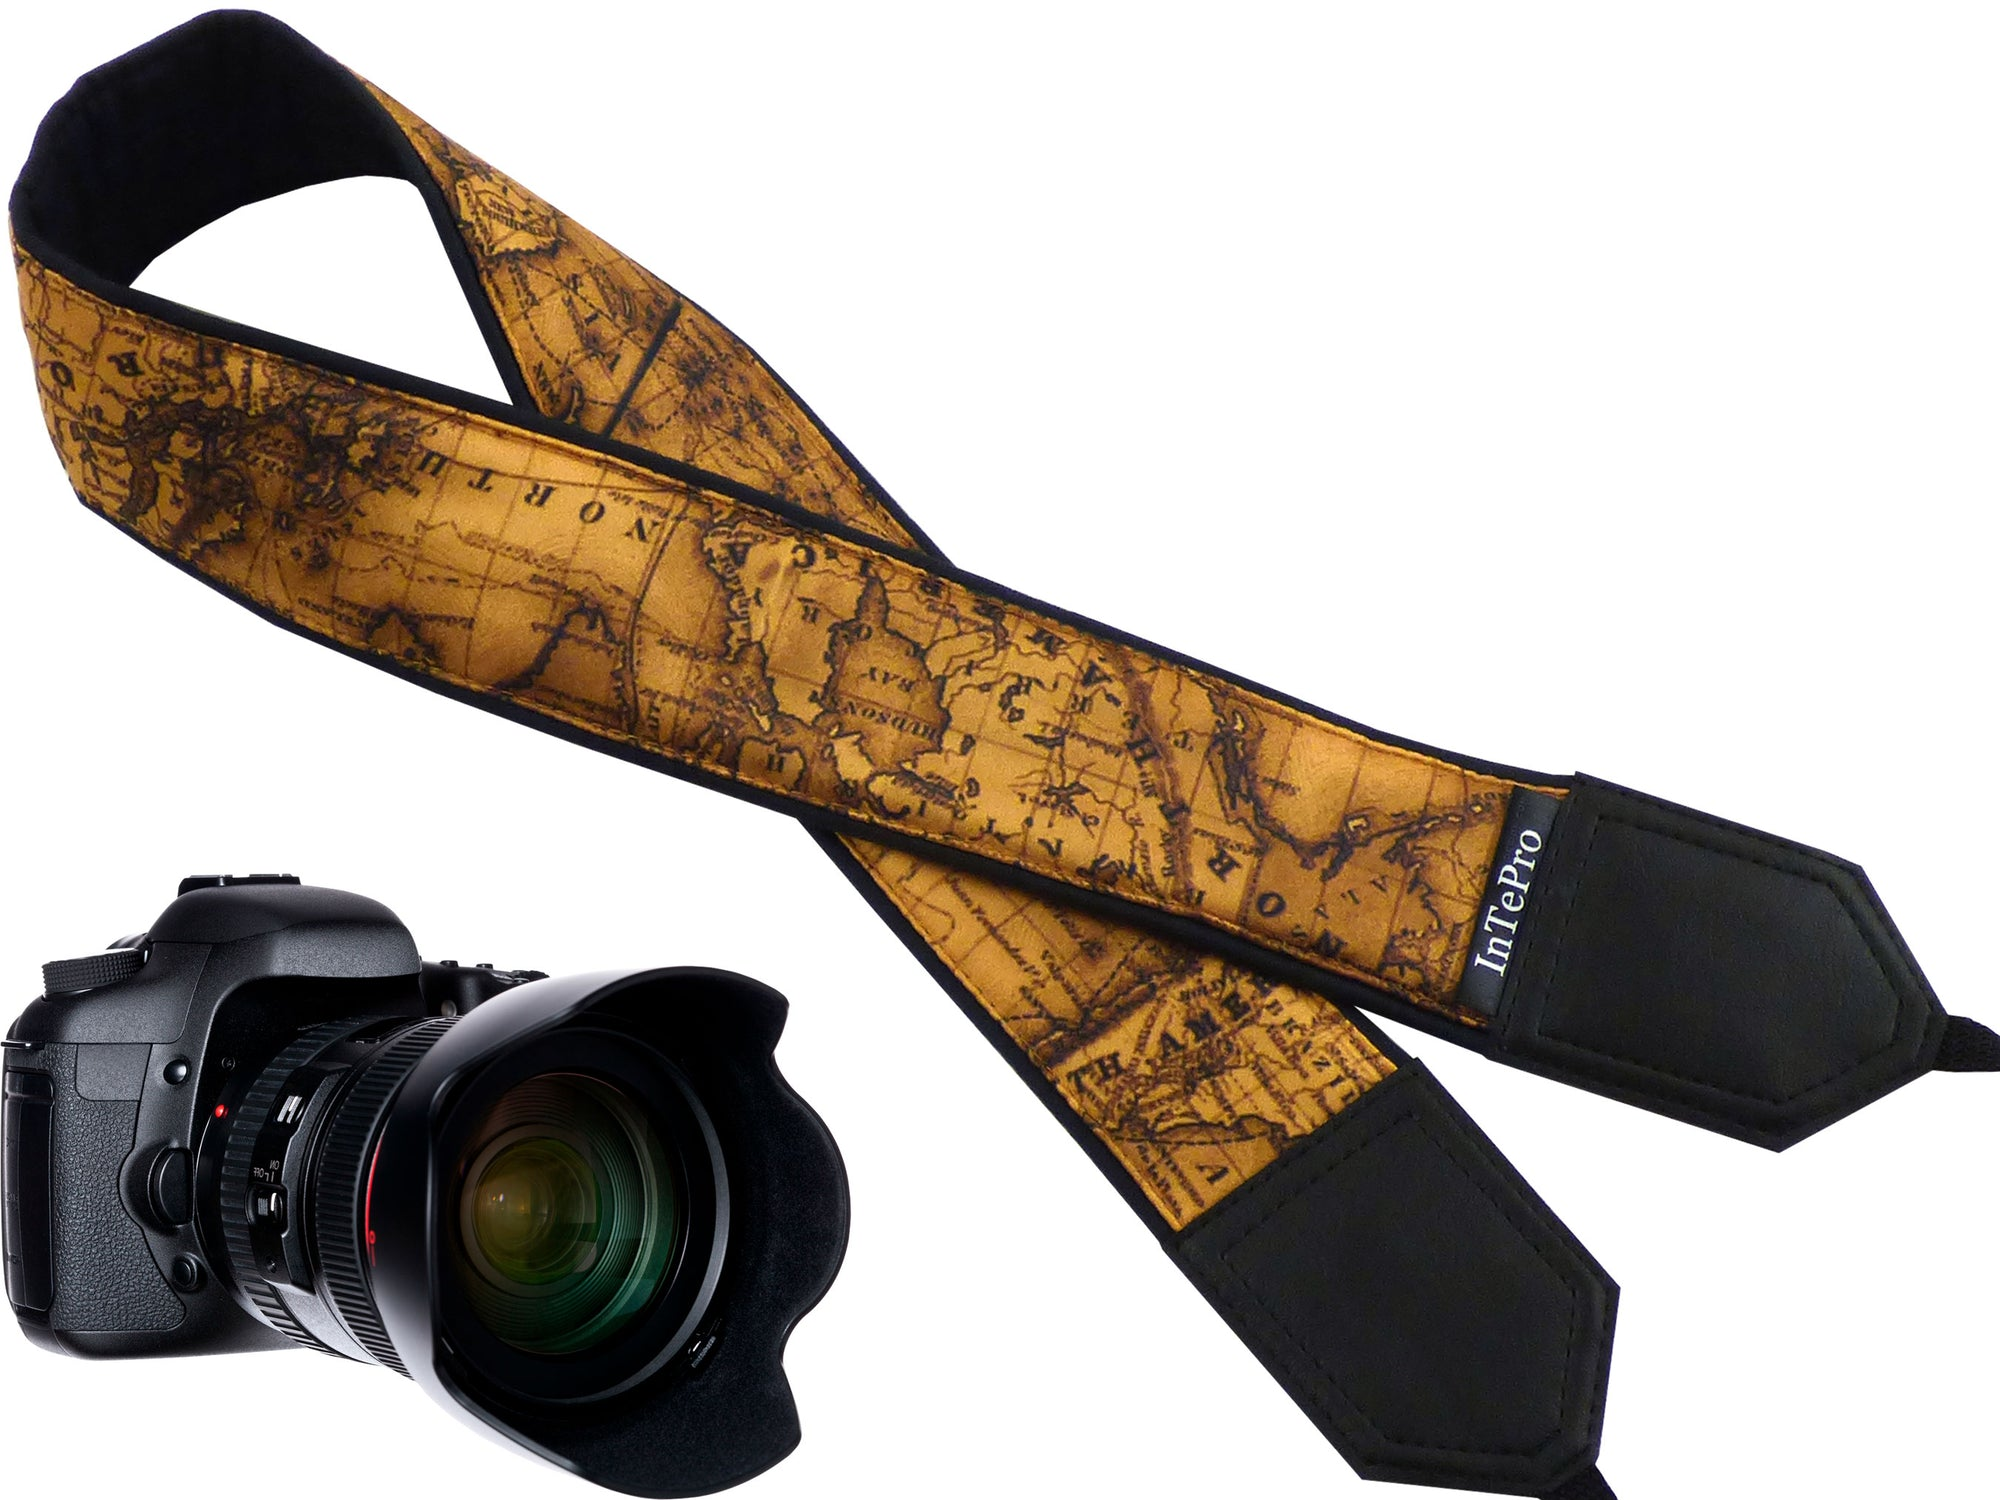 Vintage World map camera strap.